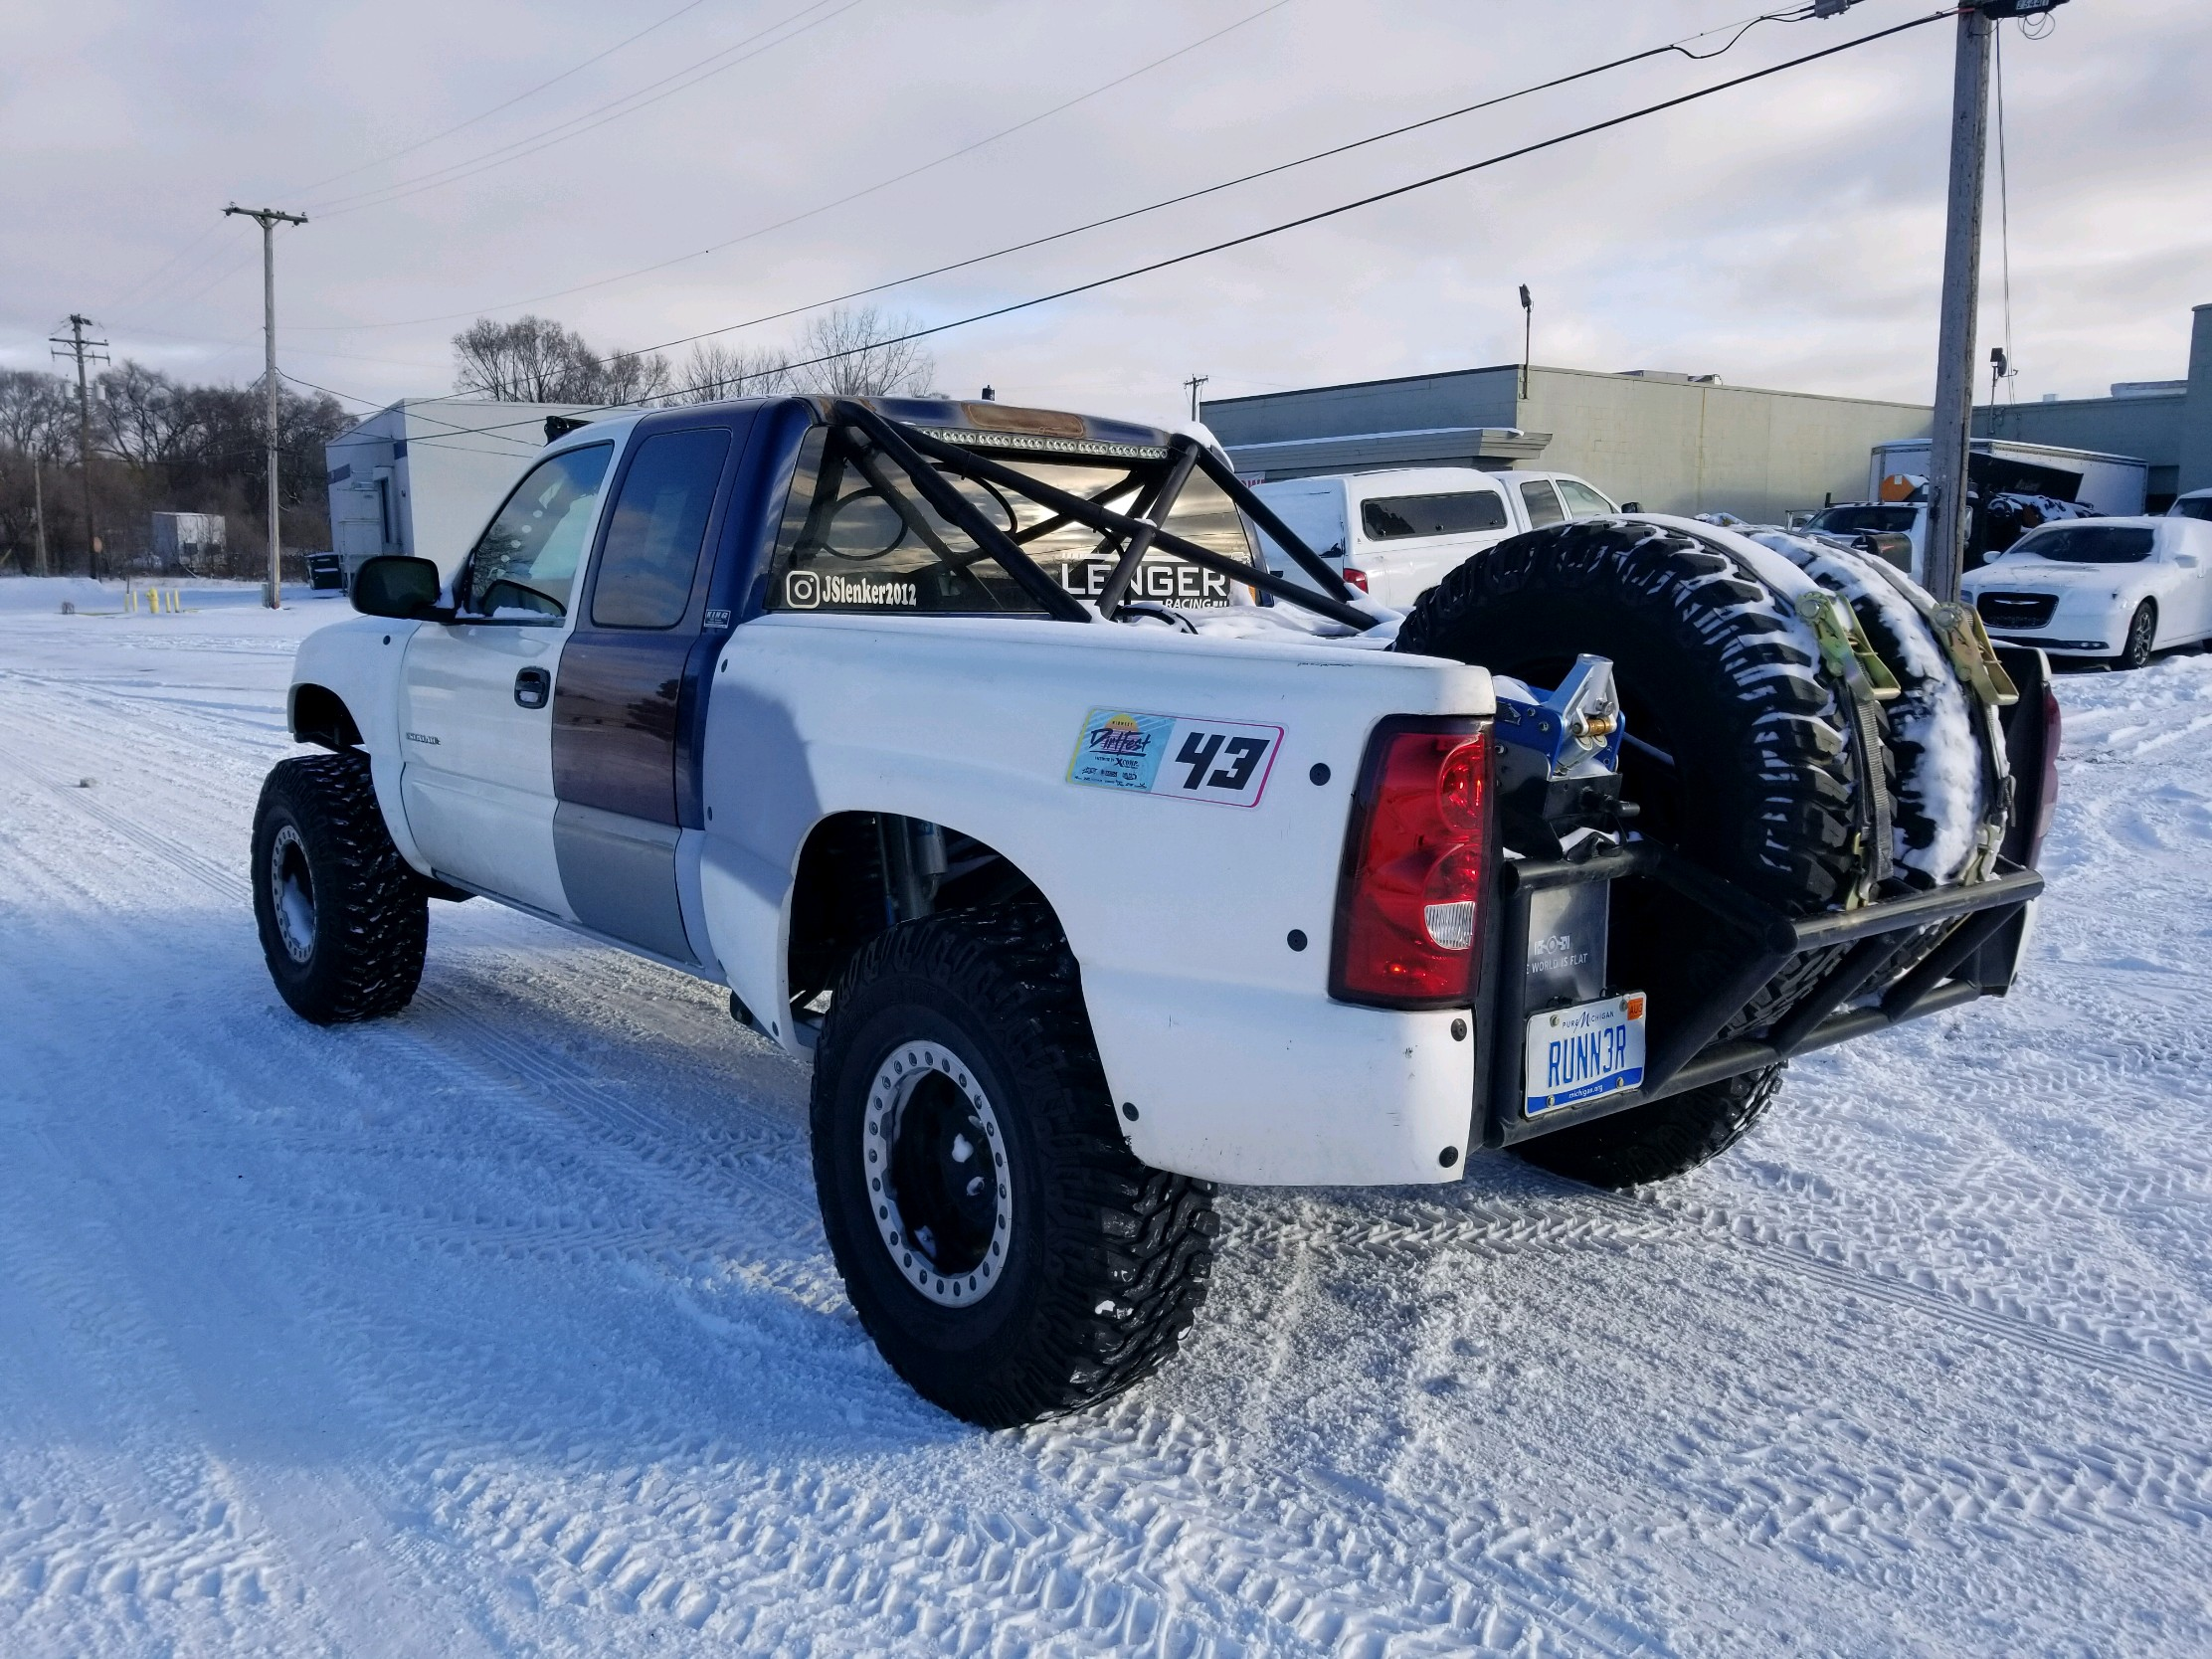 JARED PRERUNNER CHEVY 37 SNOW 3